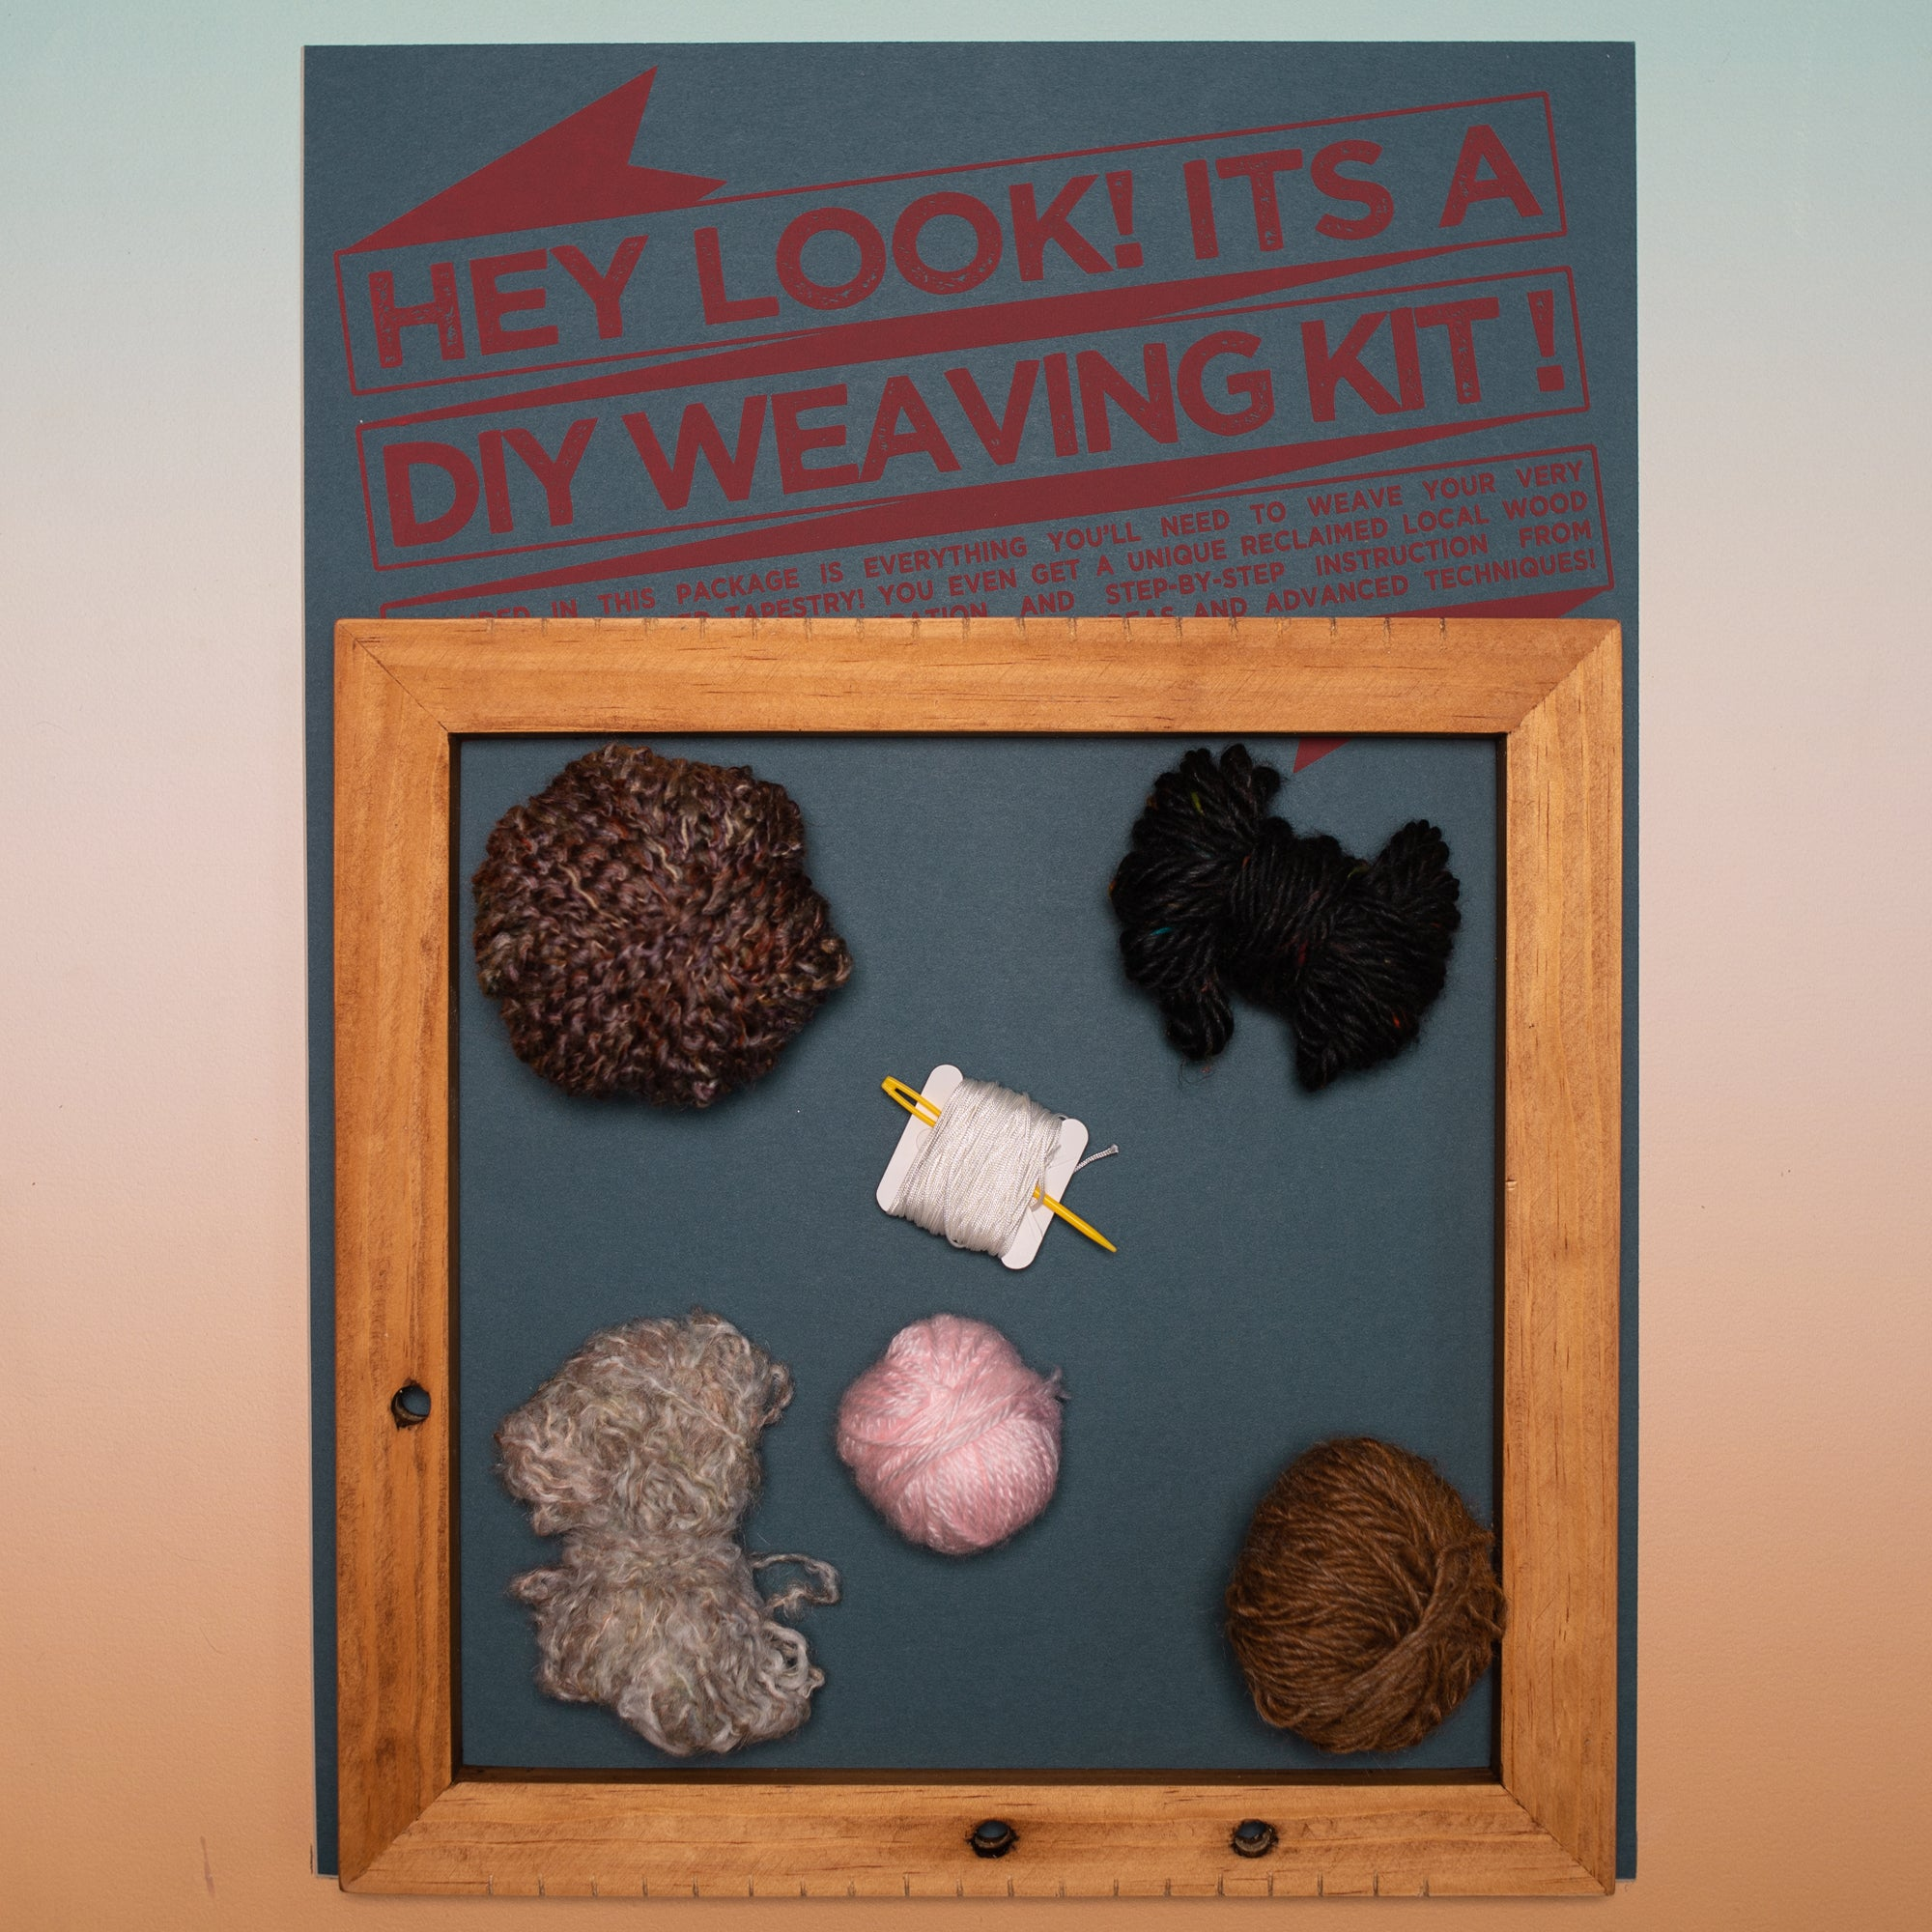 Weaving Kit 076 by Electric Pink + Mutual Adoration, Electric Pink + Mutual Adoration, Handcrafted Home Goods and Gifts